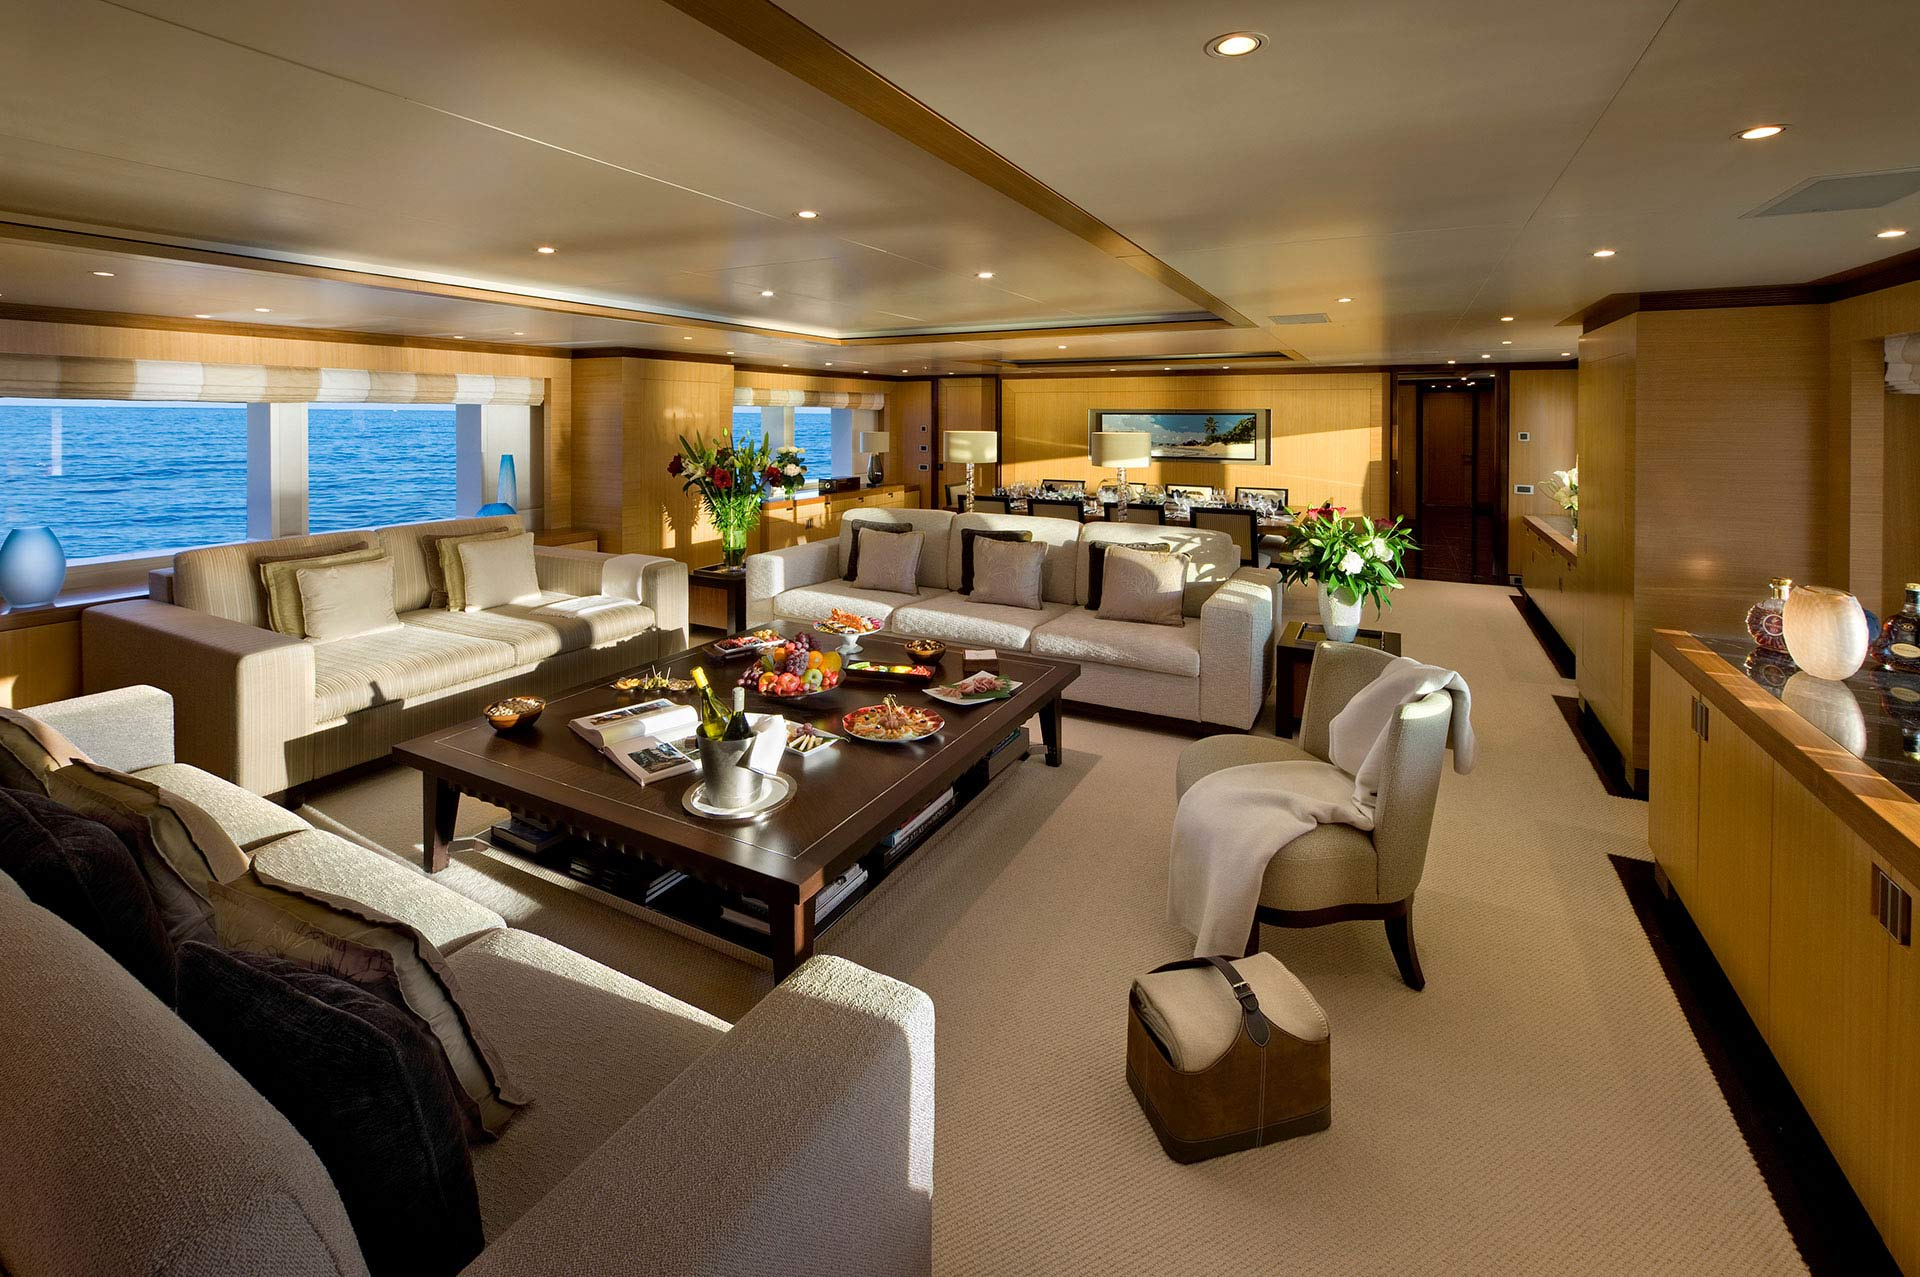 Andreas-L-Motor-Yacht-for-charter-gallery-21.jpg